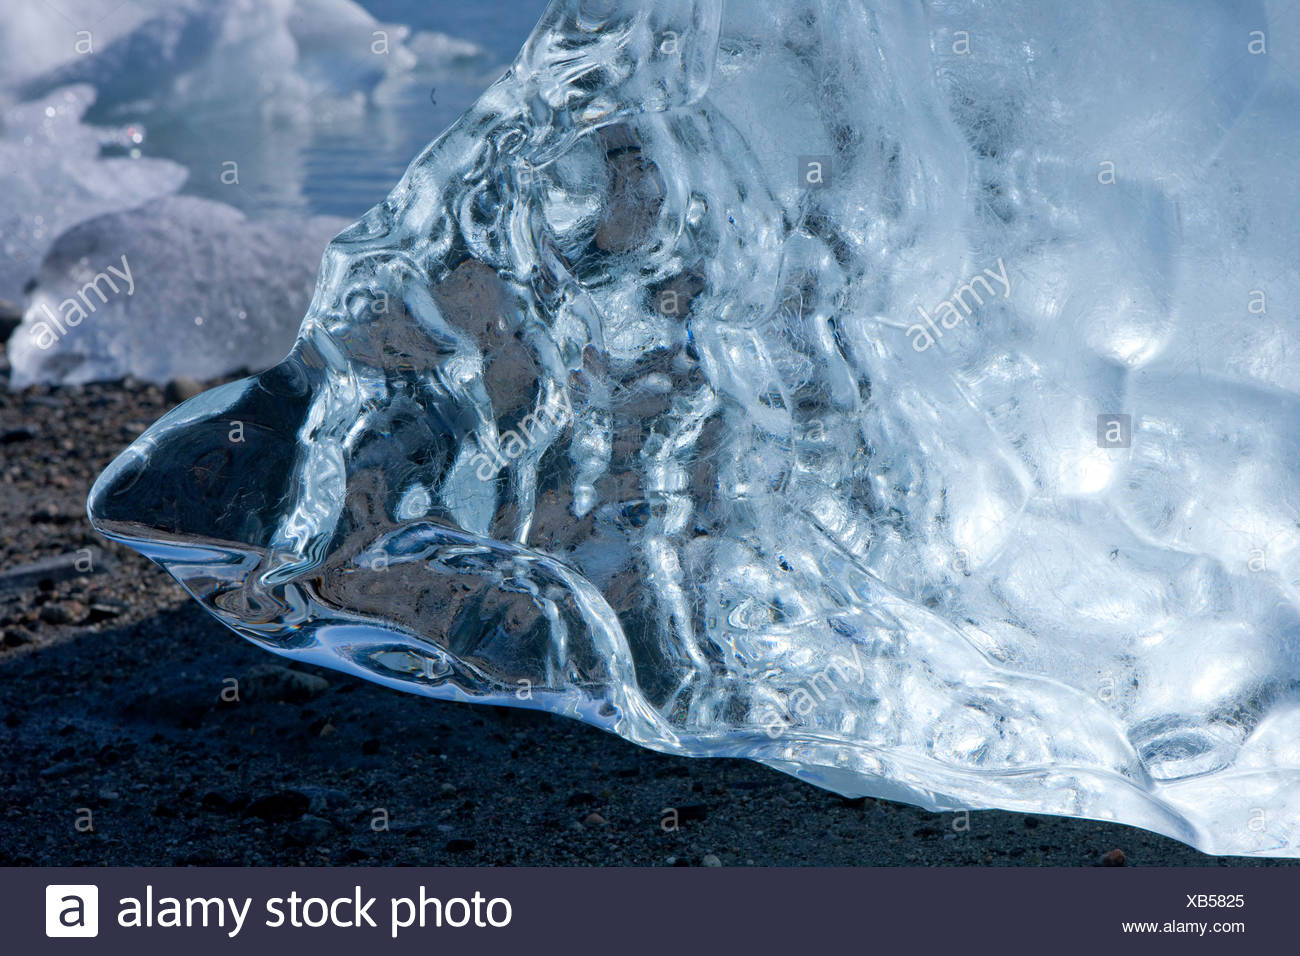 Ice, Greenland, East Greenland, glacier, ice, moraine, structure, concepts, - Stock Image